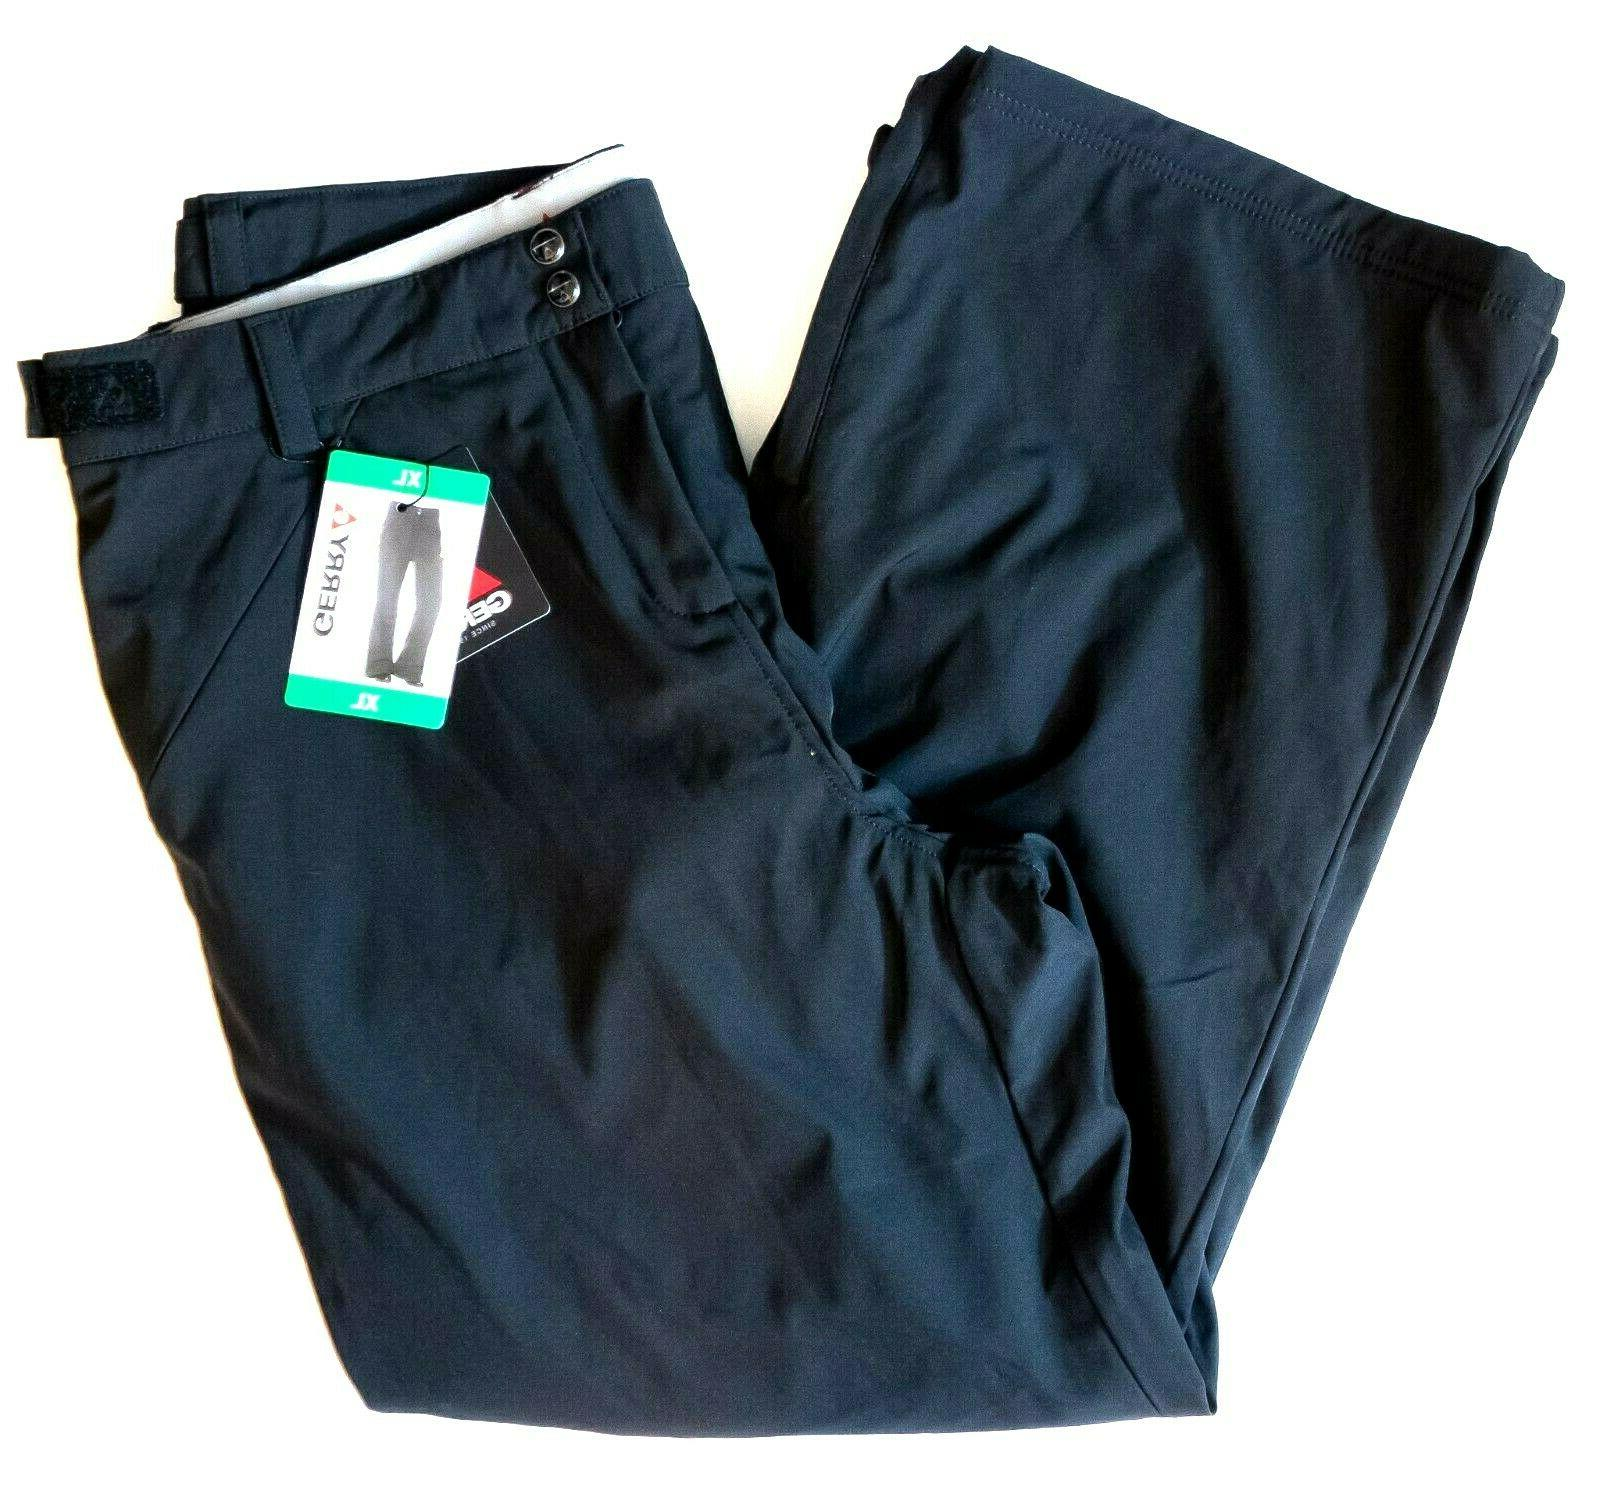 Gerry XL Insulated Ski Pants